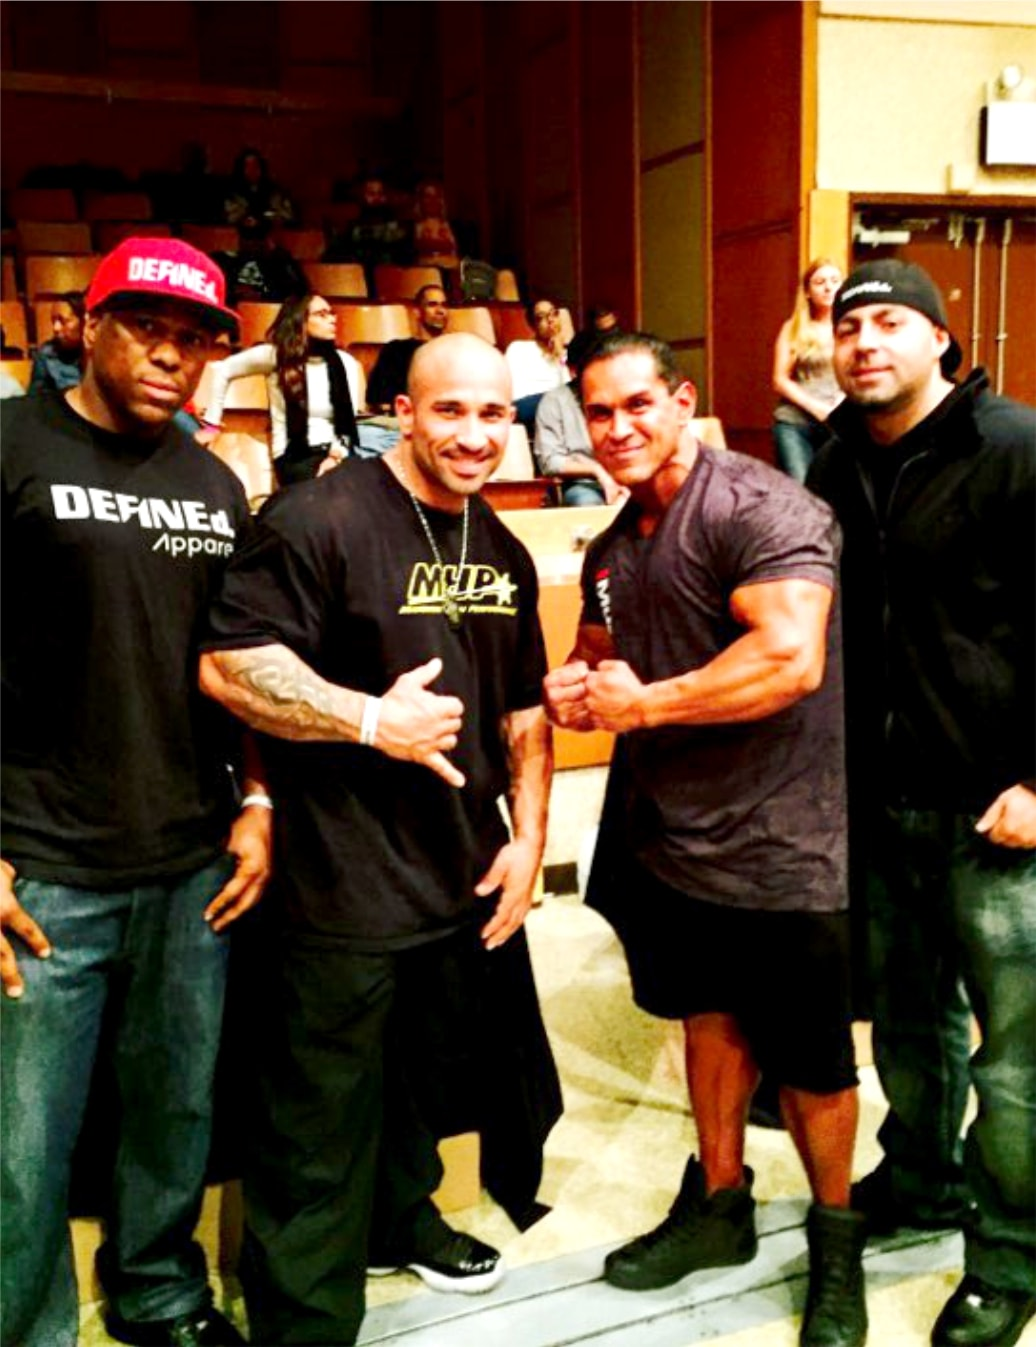 IFBB Pro 3x Olympian, 2X Arnold Classic and 2015 Puerto Rico, Marco Rivera and IFBB pro judge Fabian Orozco